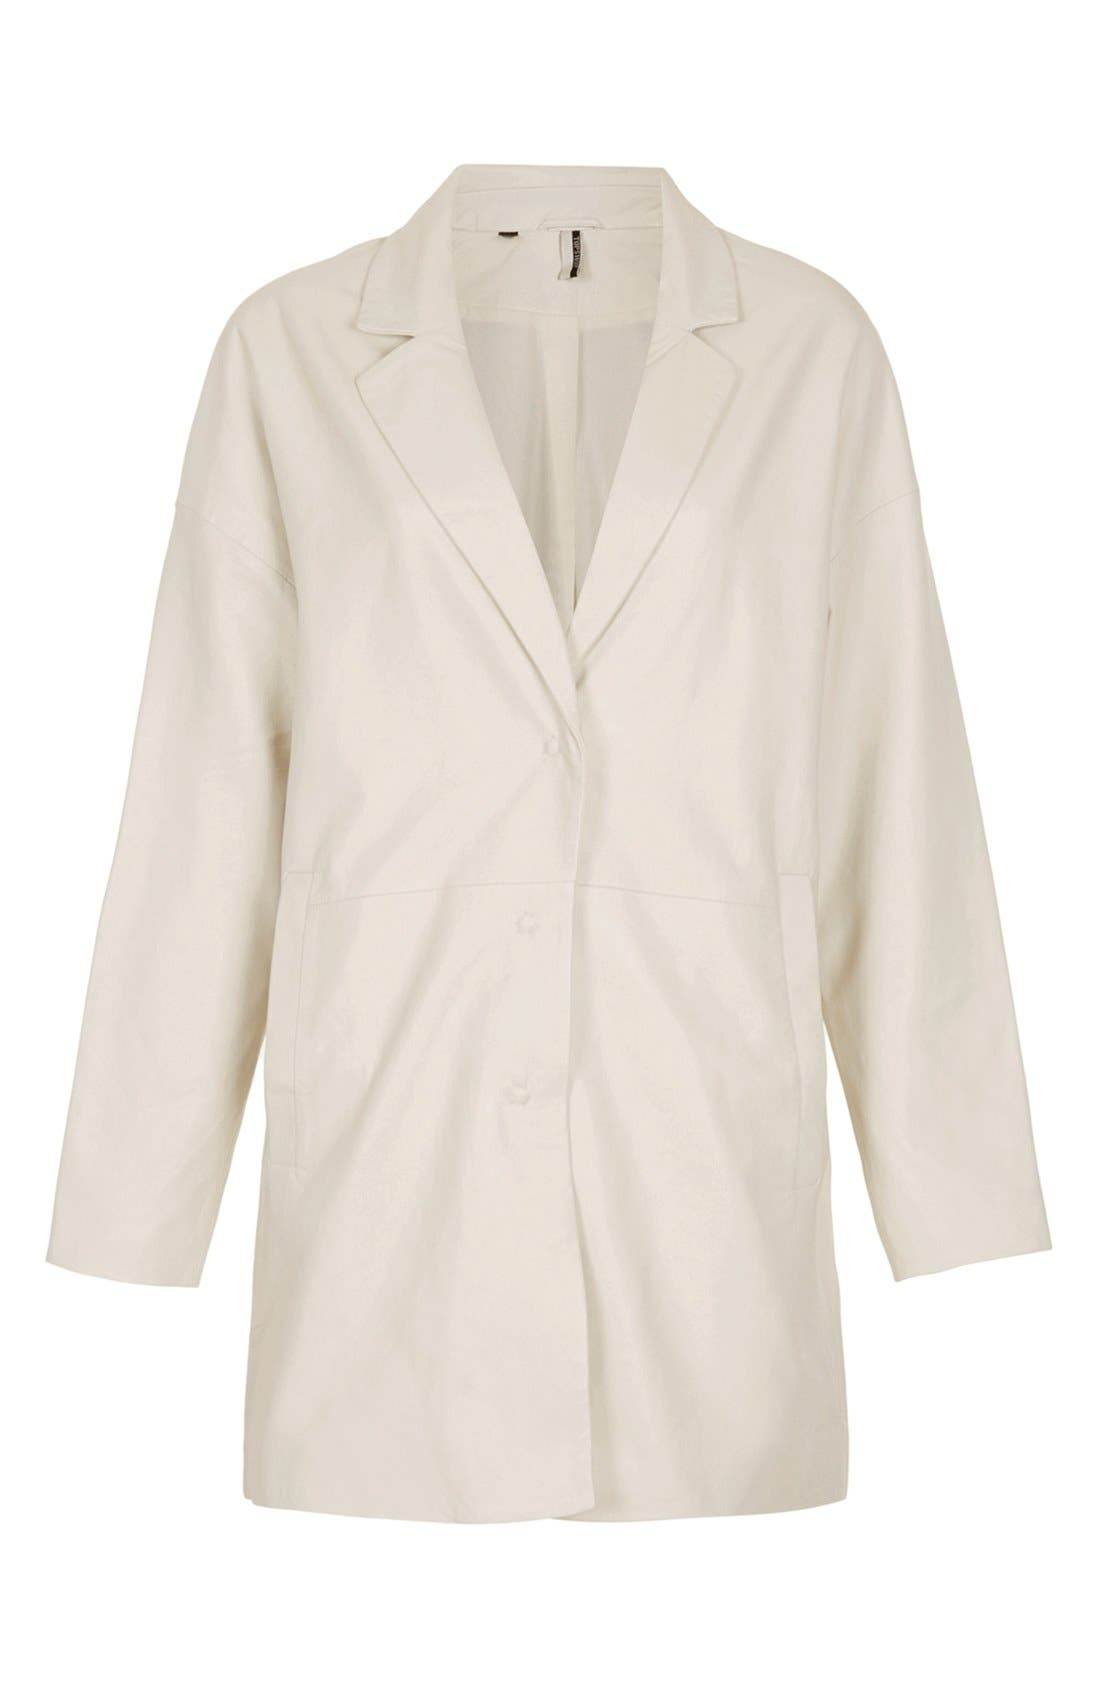 Alternate Image 1 Selected - Topshop 'The Collection Starring Kate Bosworth' Leather Coat